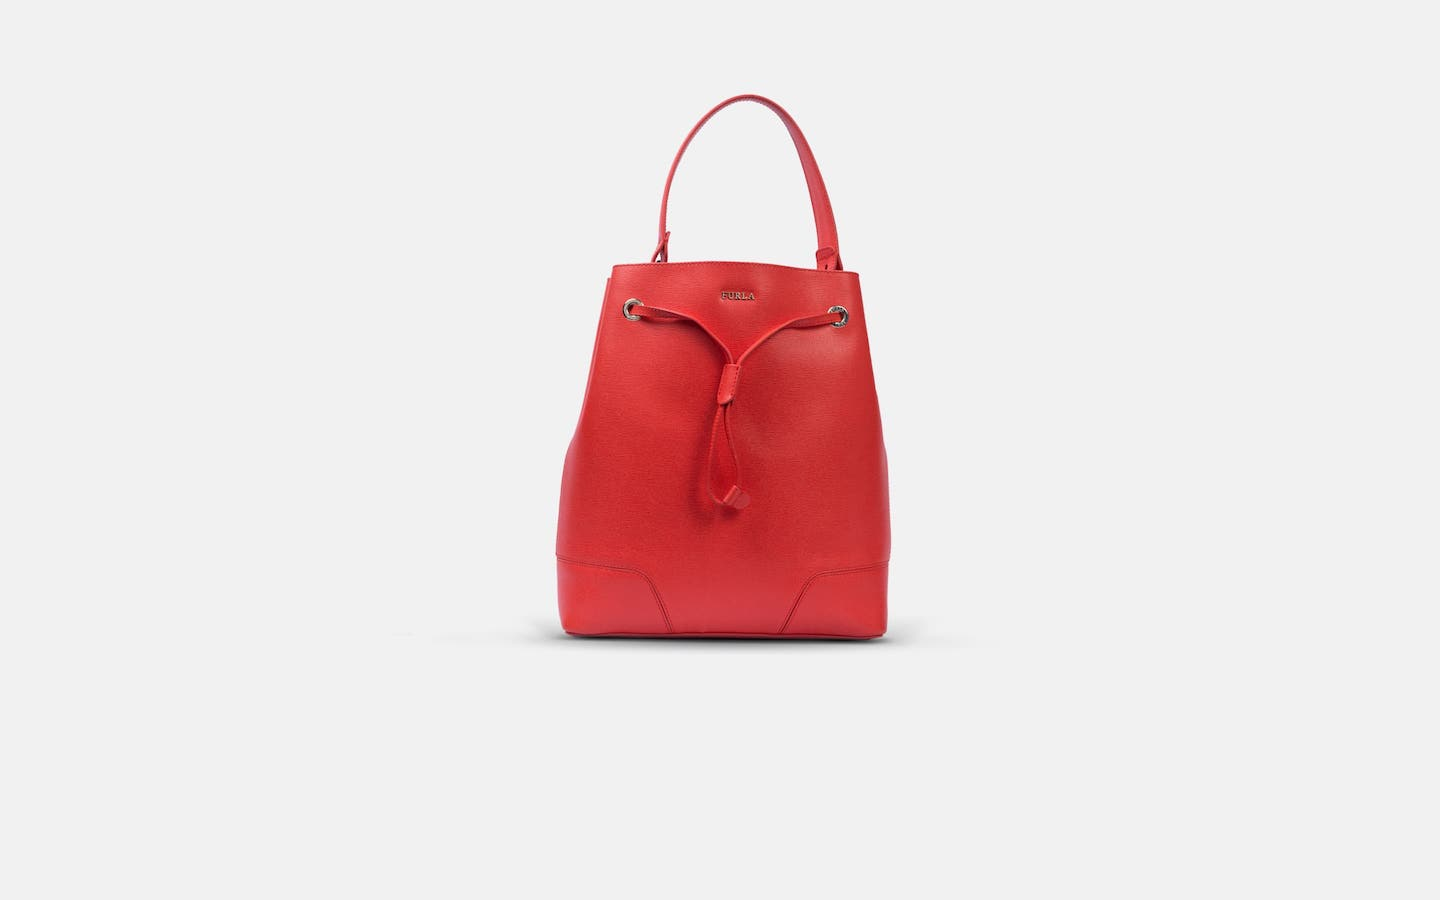 furla-stacy-red-front-min-min